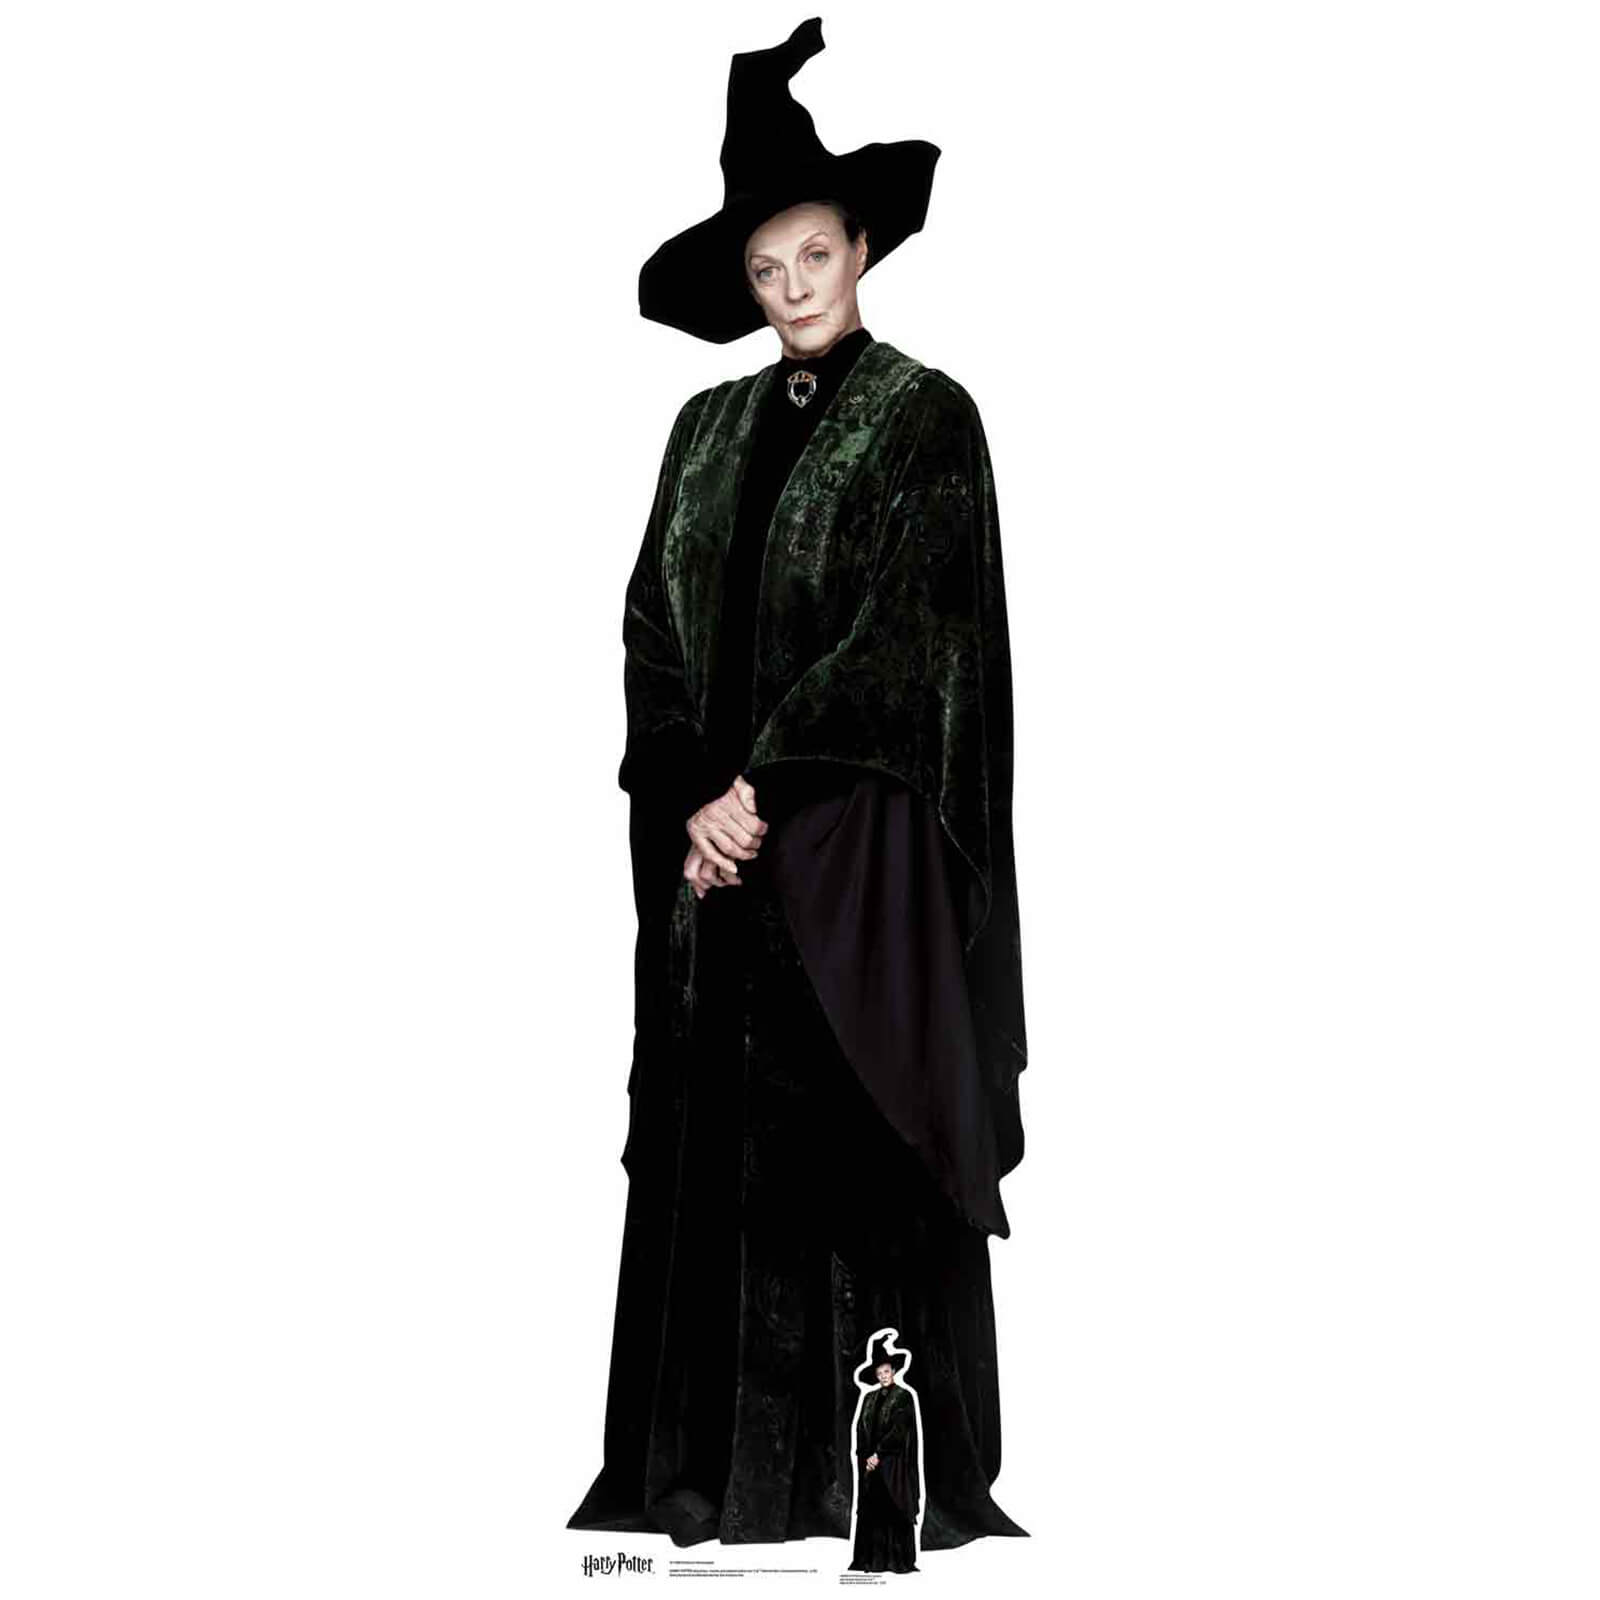 Professor McGonagall Life Sized Cut Out